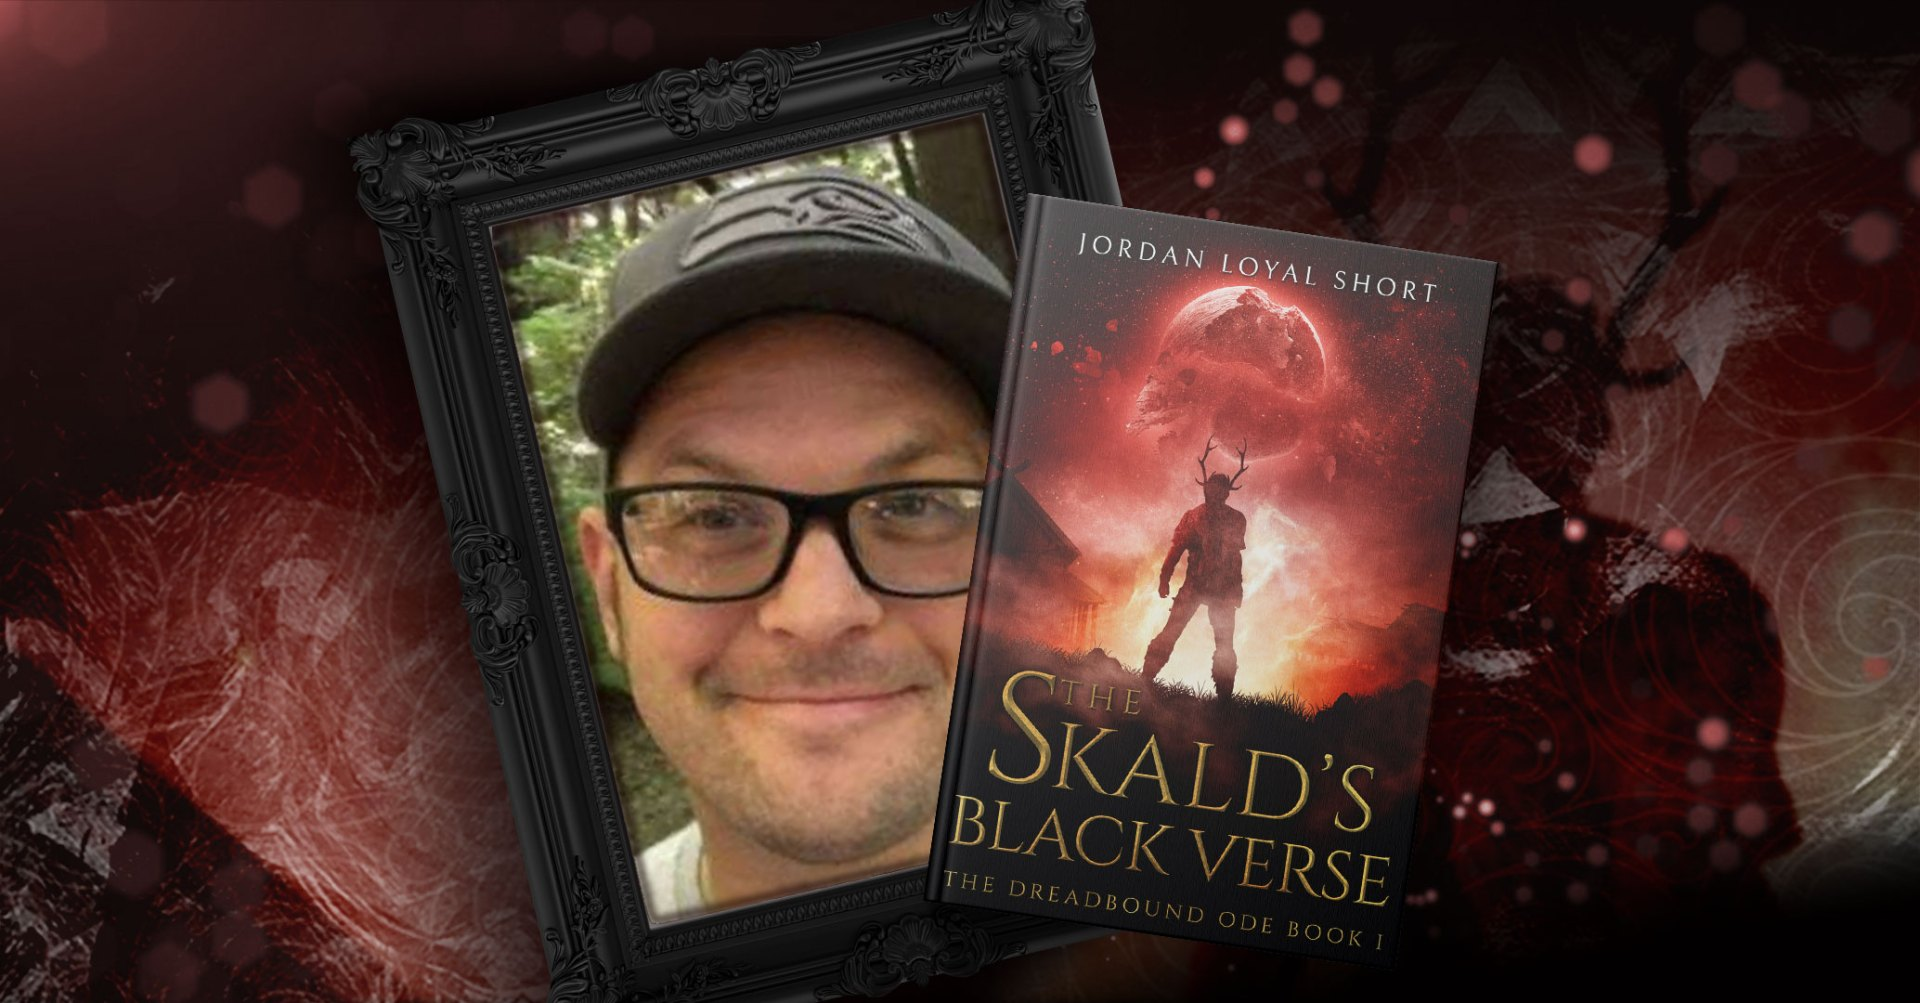 Storytellers On Tour Presents: The Skald's Black Verse by Jordan Loyal Short